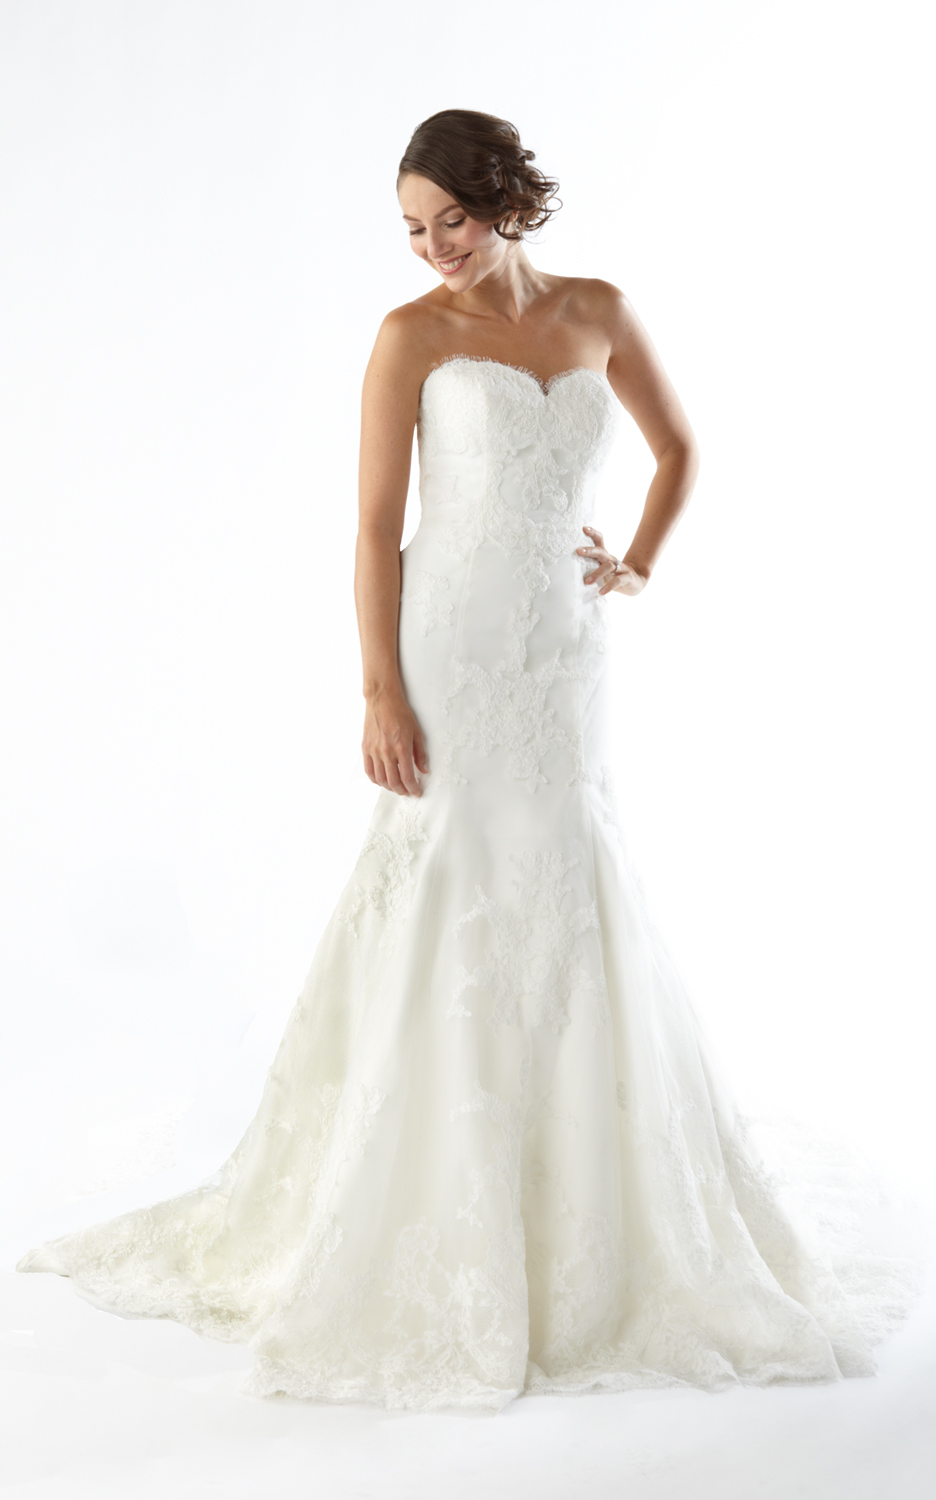 Chic Summer Bridal Gowns